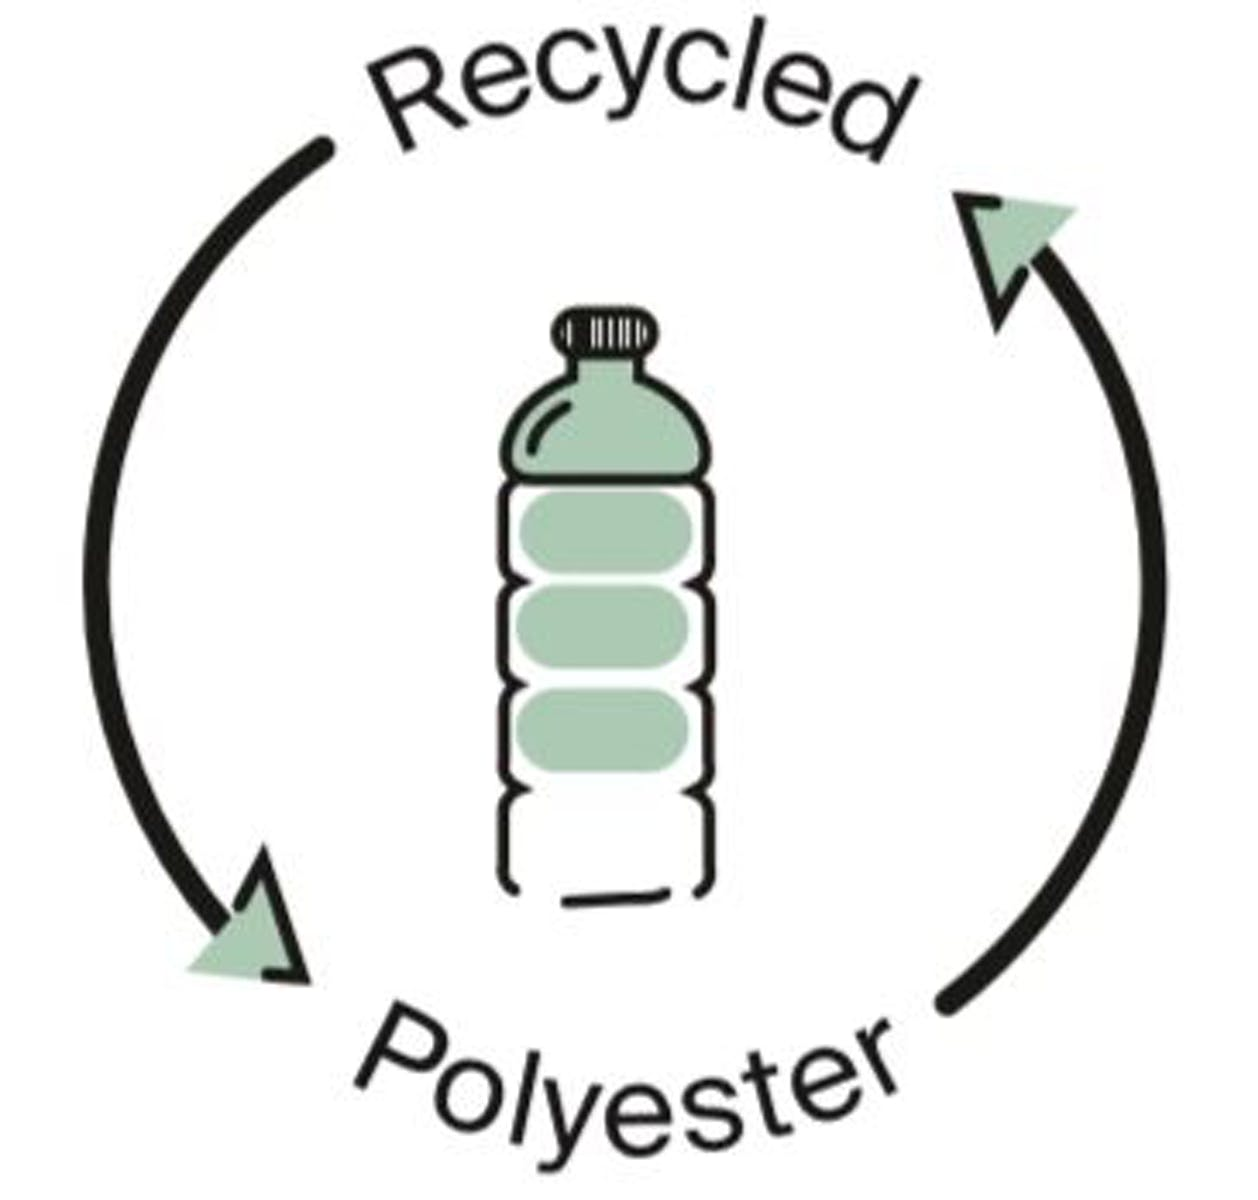 Recycled Polyester certification